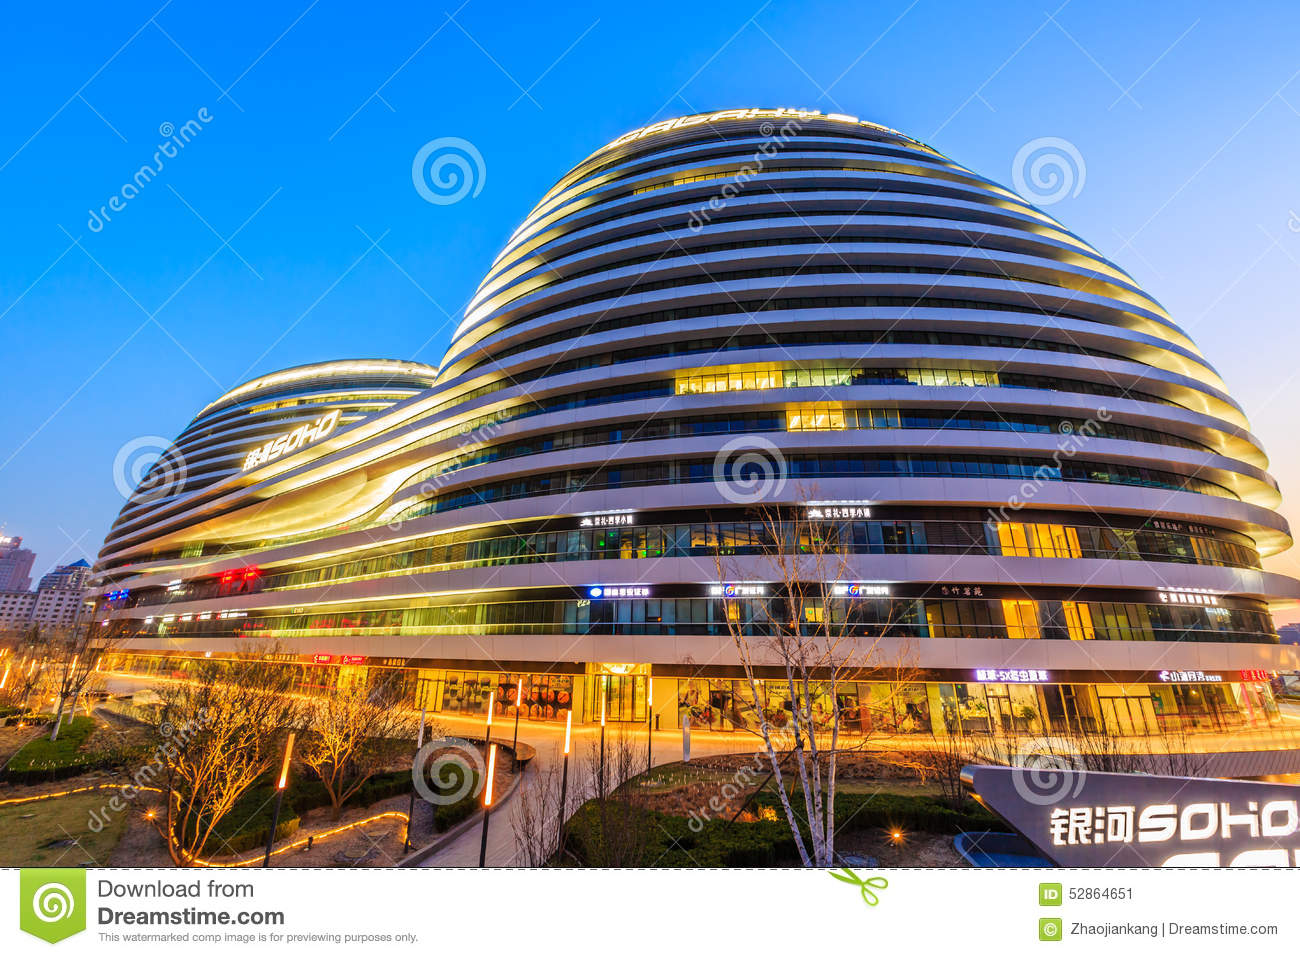 Beijing Famous Modern Architecture Galaxy SOHO Night View in